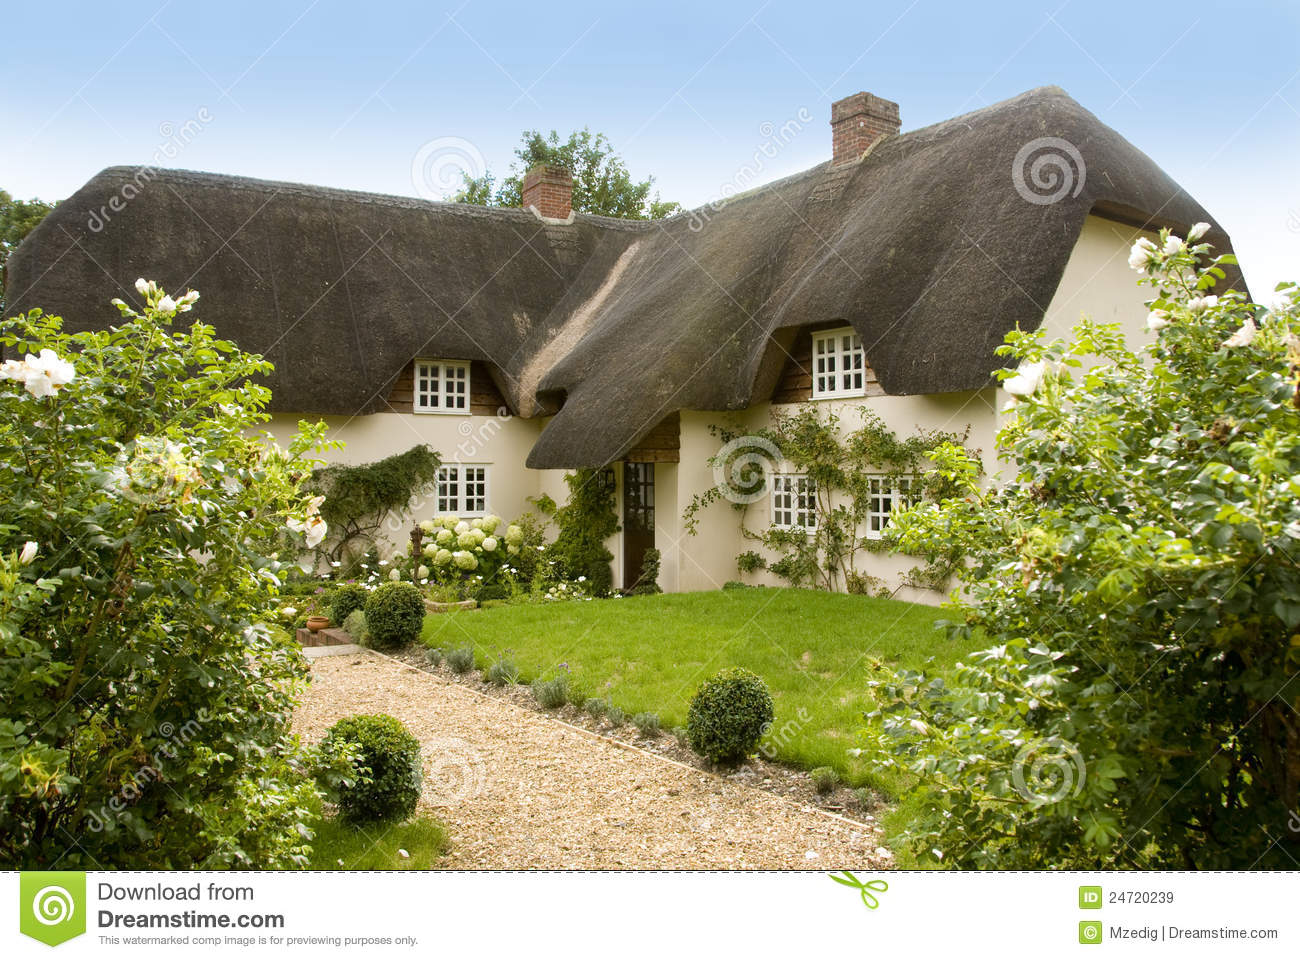 Traditional english thatched country cottage stock image image of flowers wiltshire 24720239 - Cottage image ...